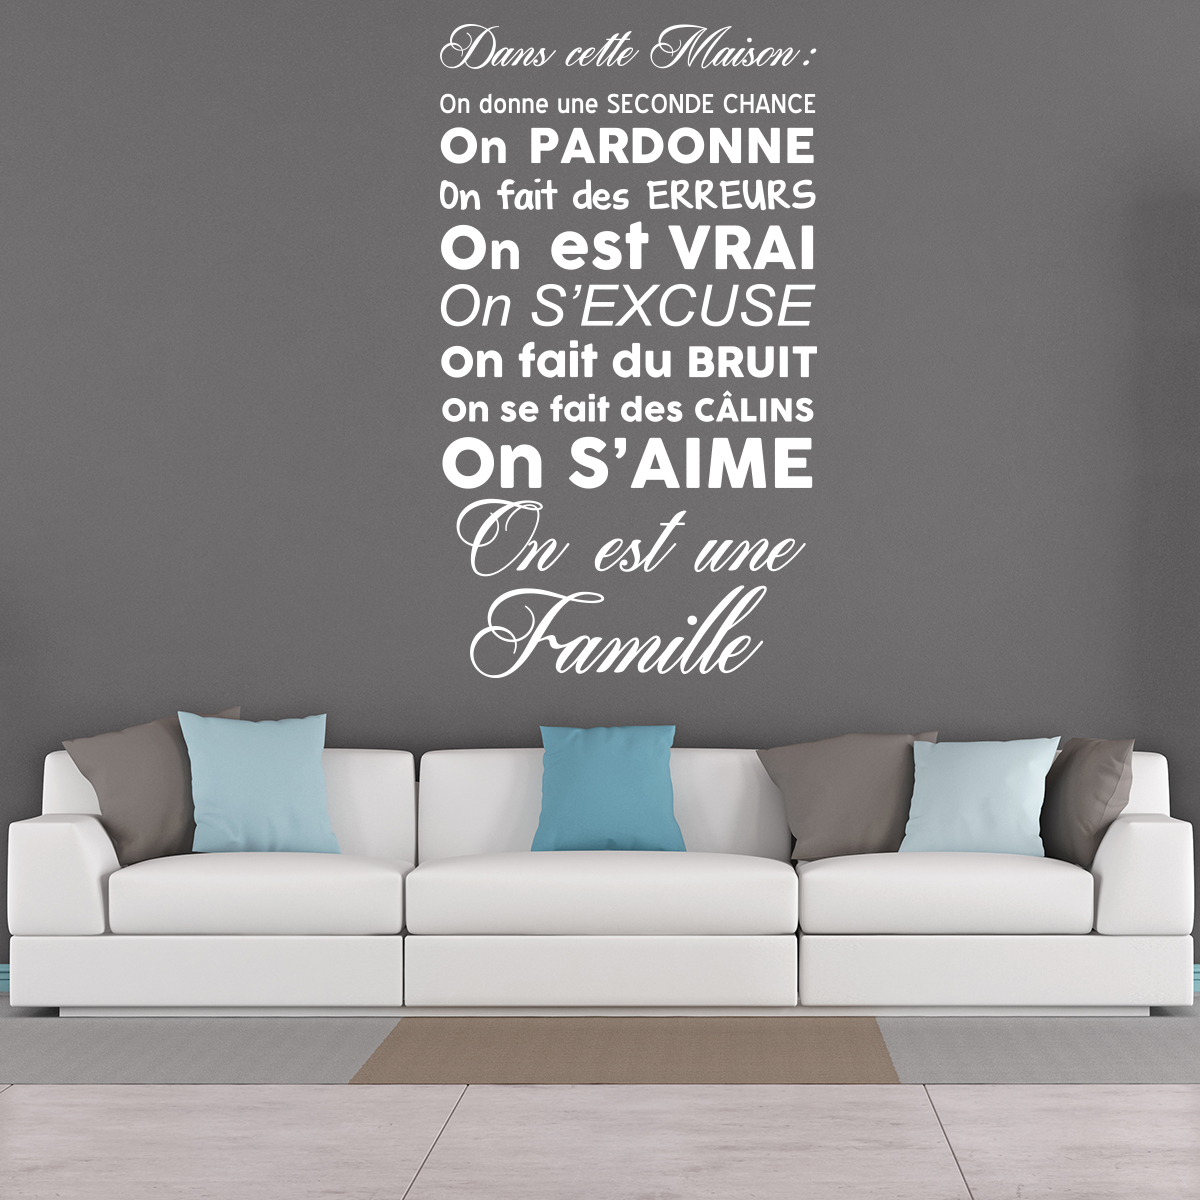 sticker citation dans cette maison on est une famille stickers citations fran ais ambiance. Black Bedroom Furniture Sets. Home Design Ideas